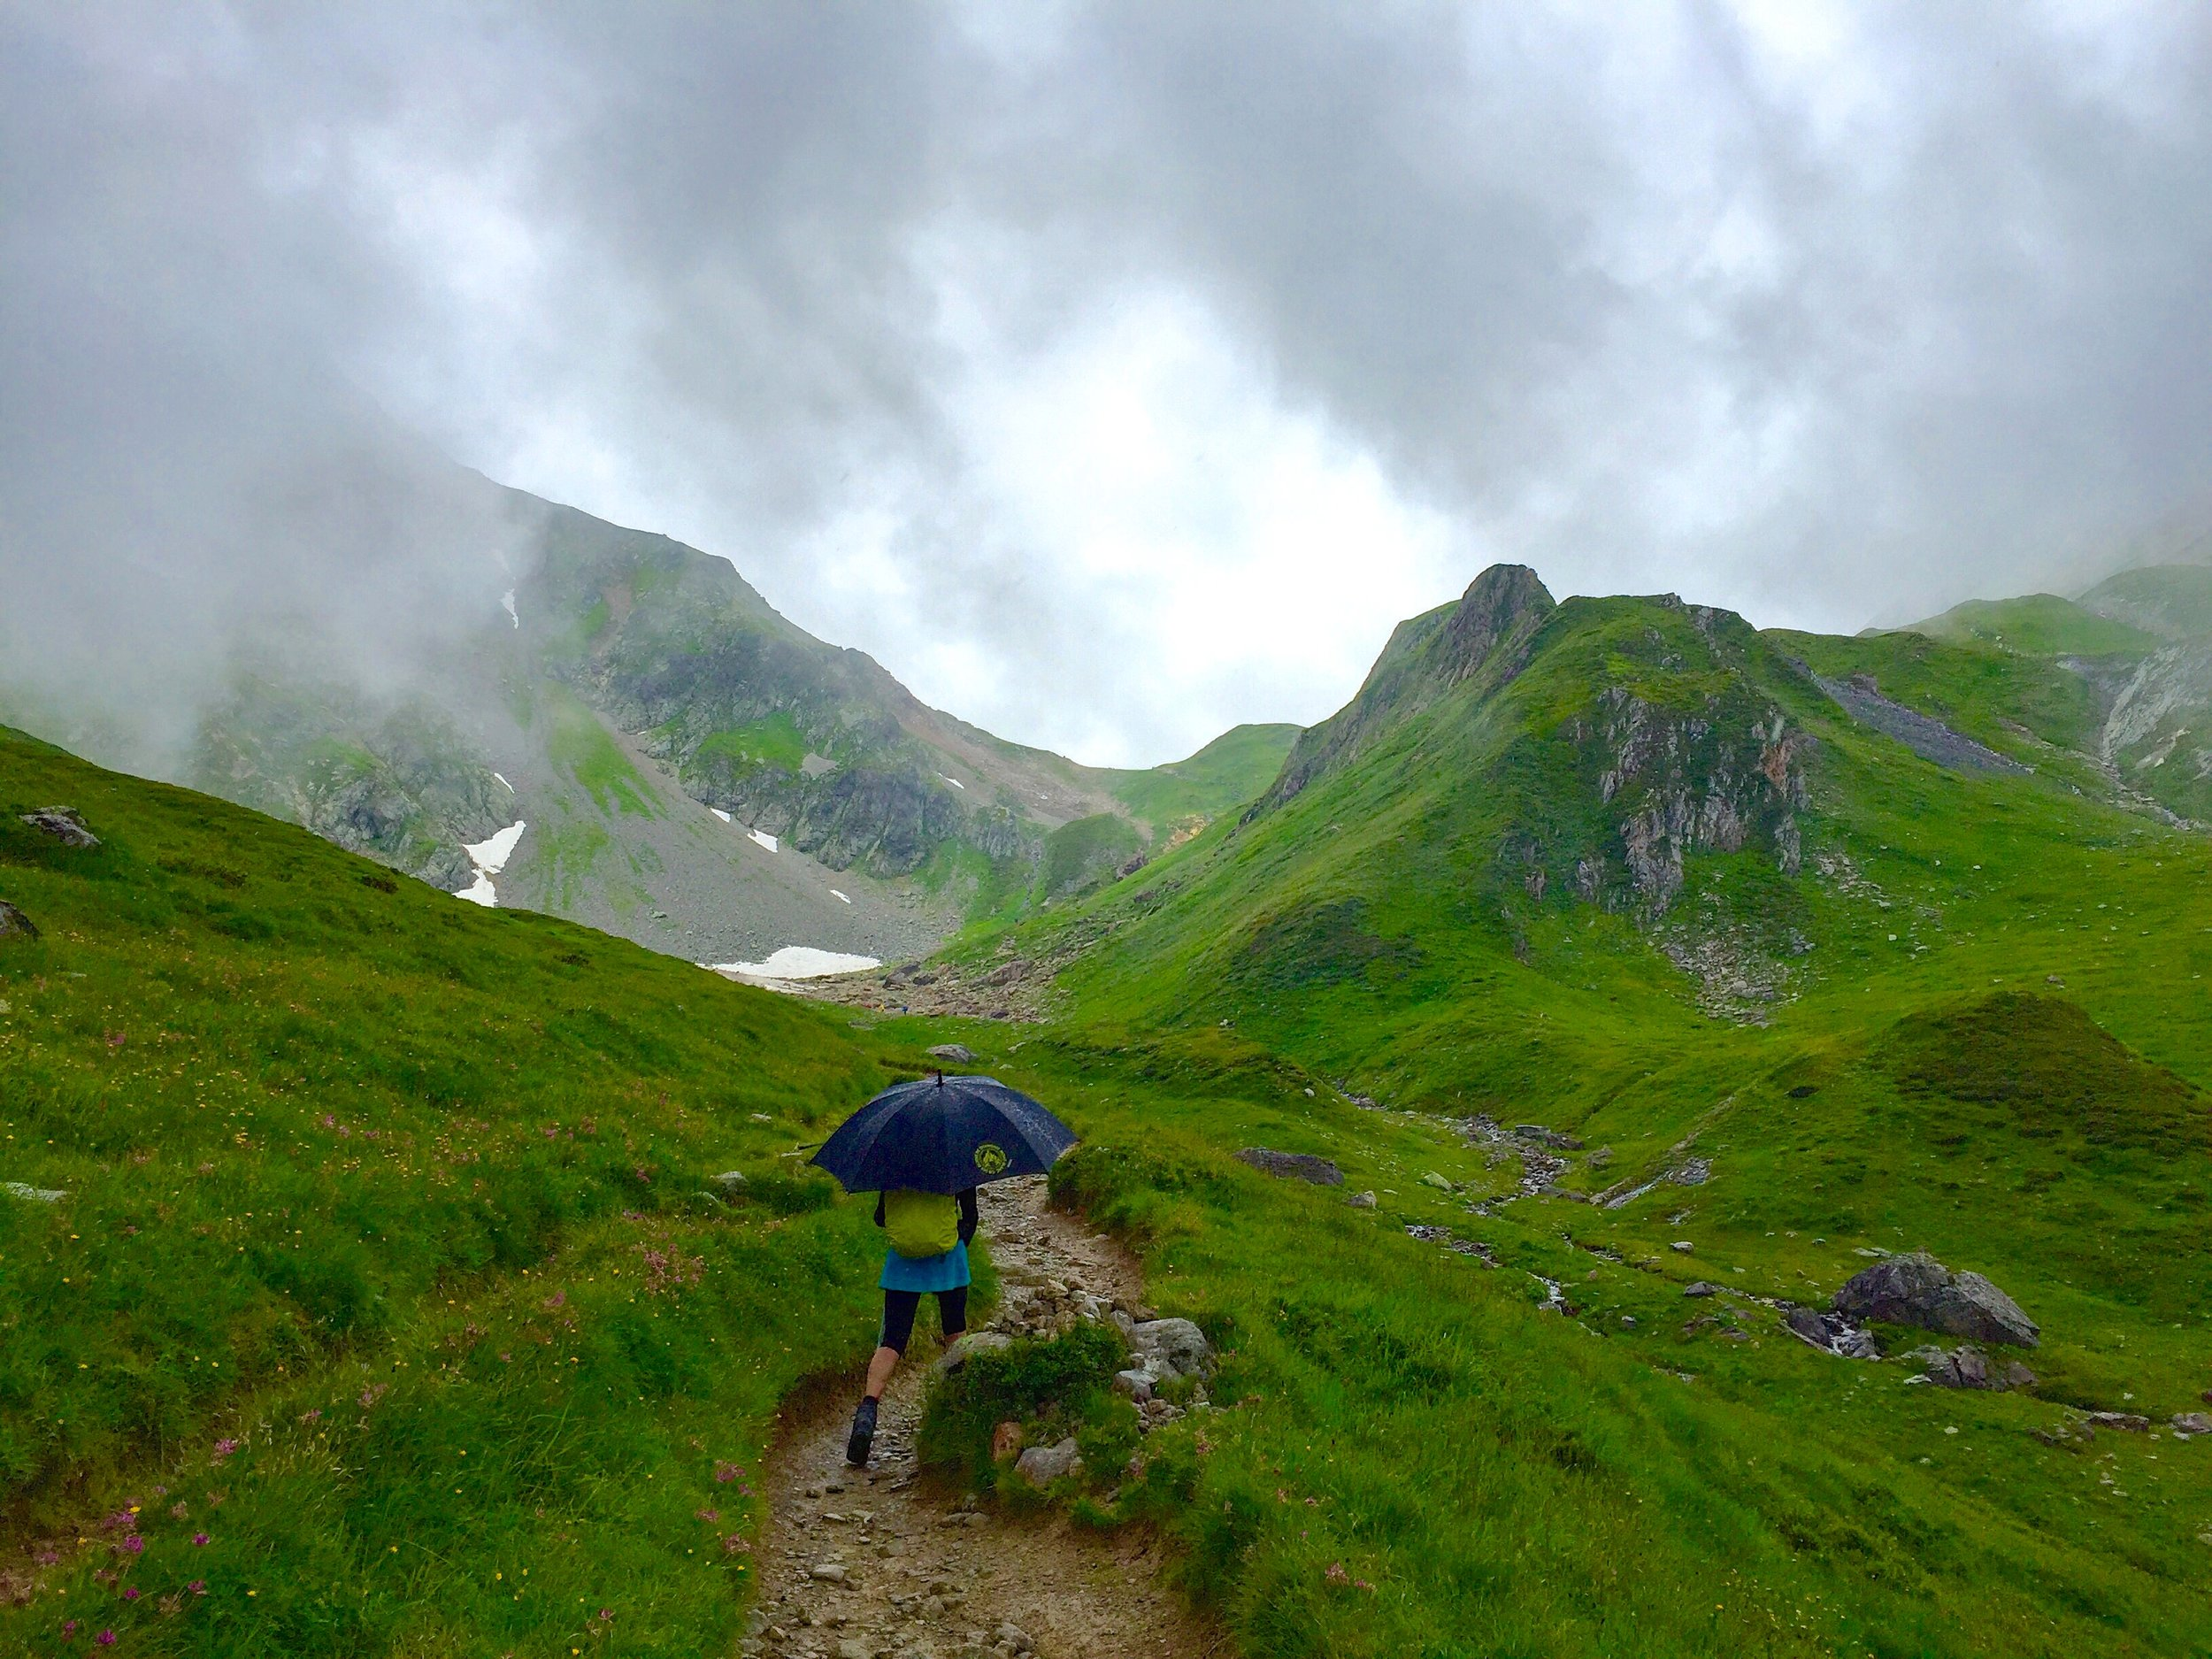 Our guide, Flo, hiking with an umbrella in the rain. I had never seen a guide hike with an umbrella before. But the French have a certain savoir faire, non?